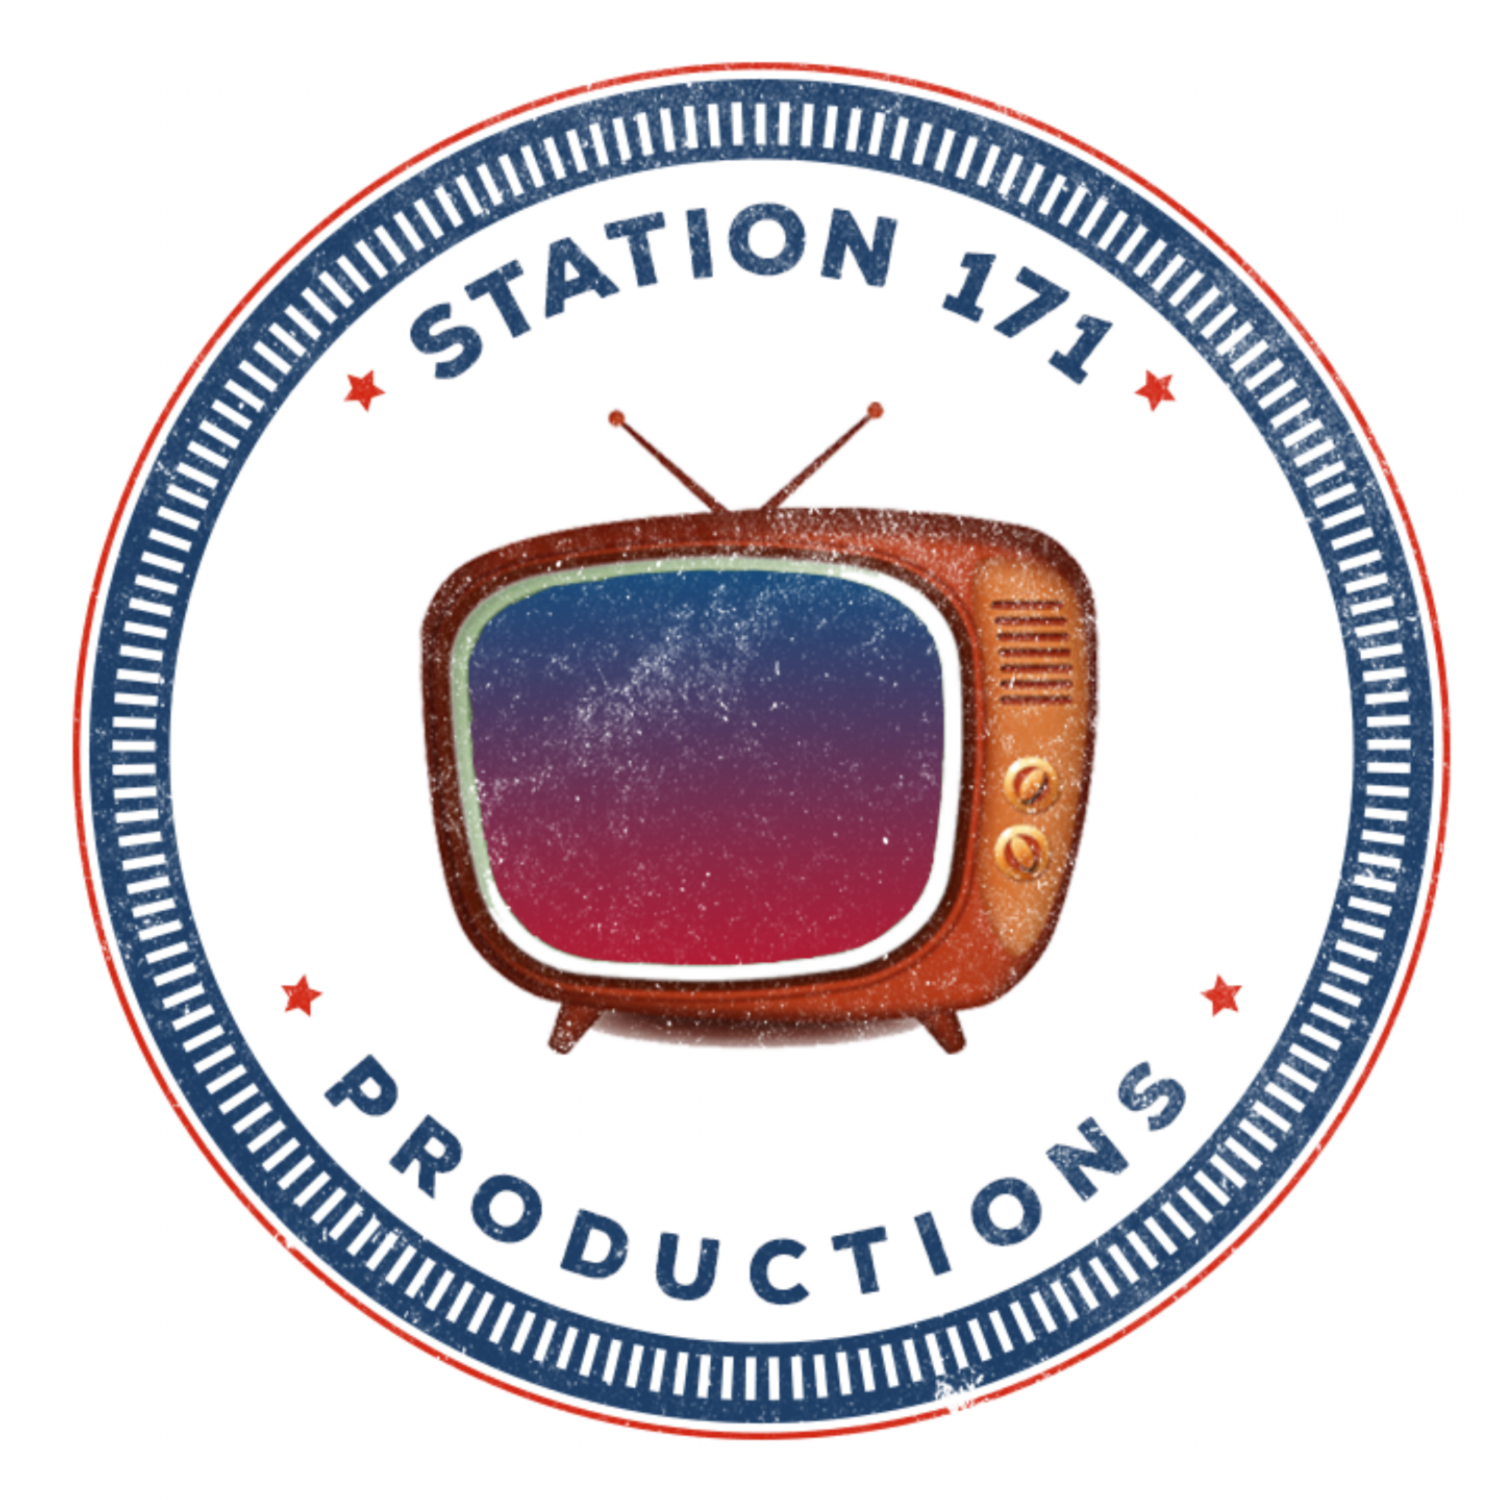 Station 171 Productions